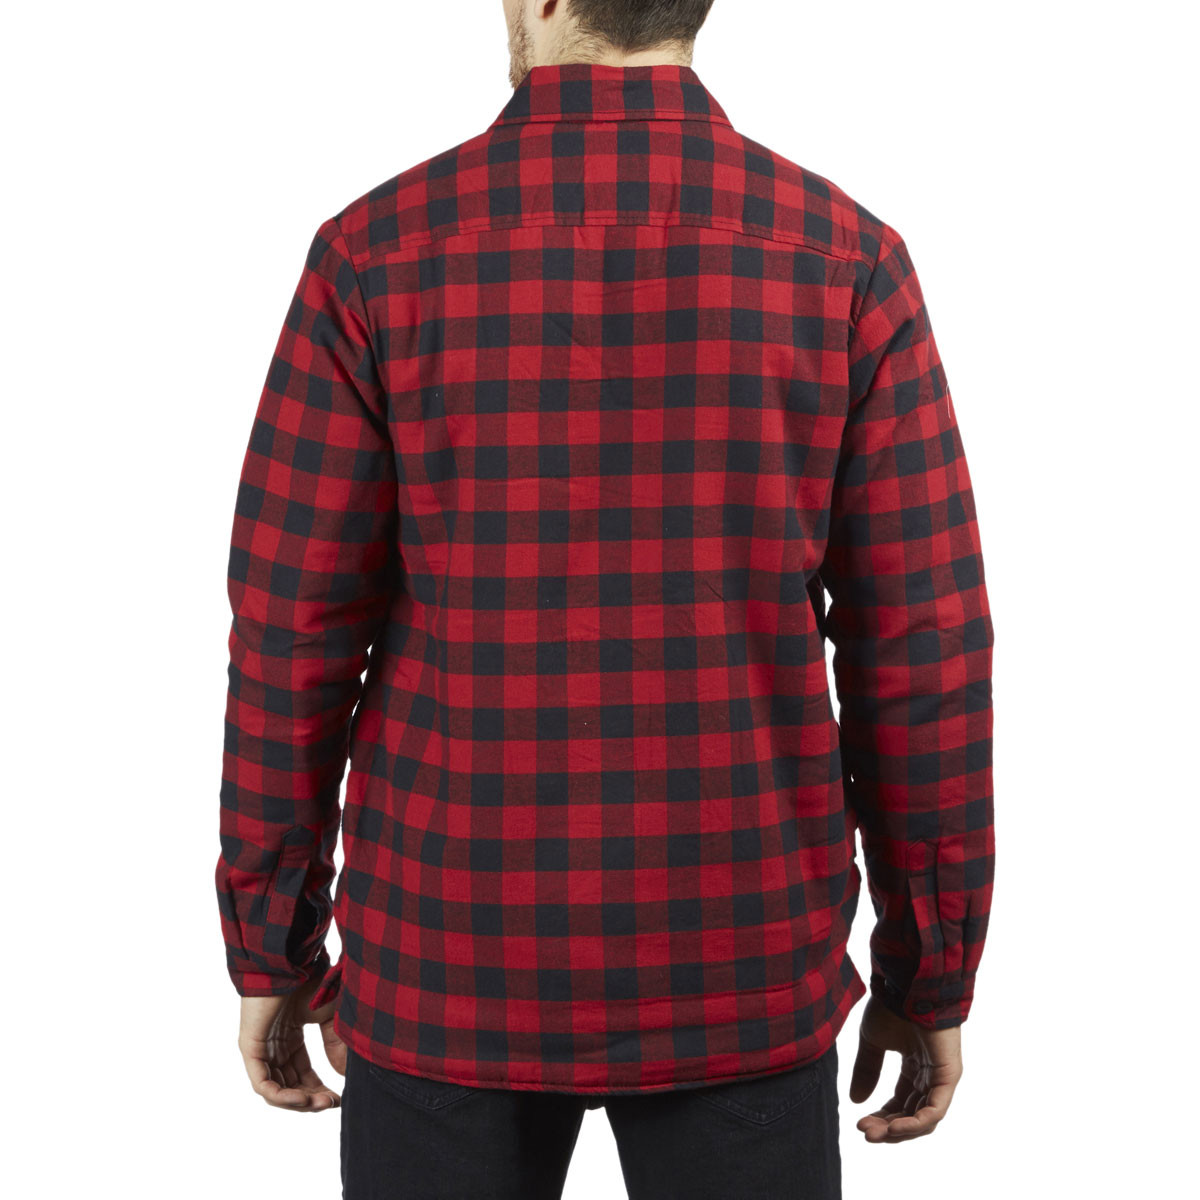 35630fc8 Dickies Flannel Shirt Sherpa Lined Jacket - Rinsed Green/Black ...